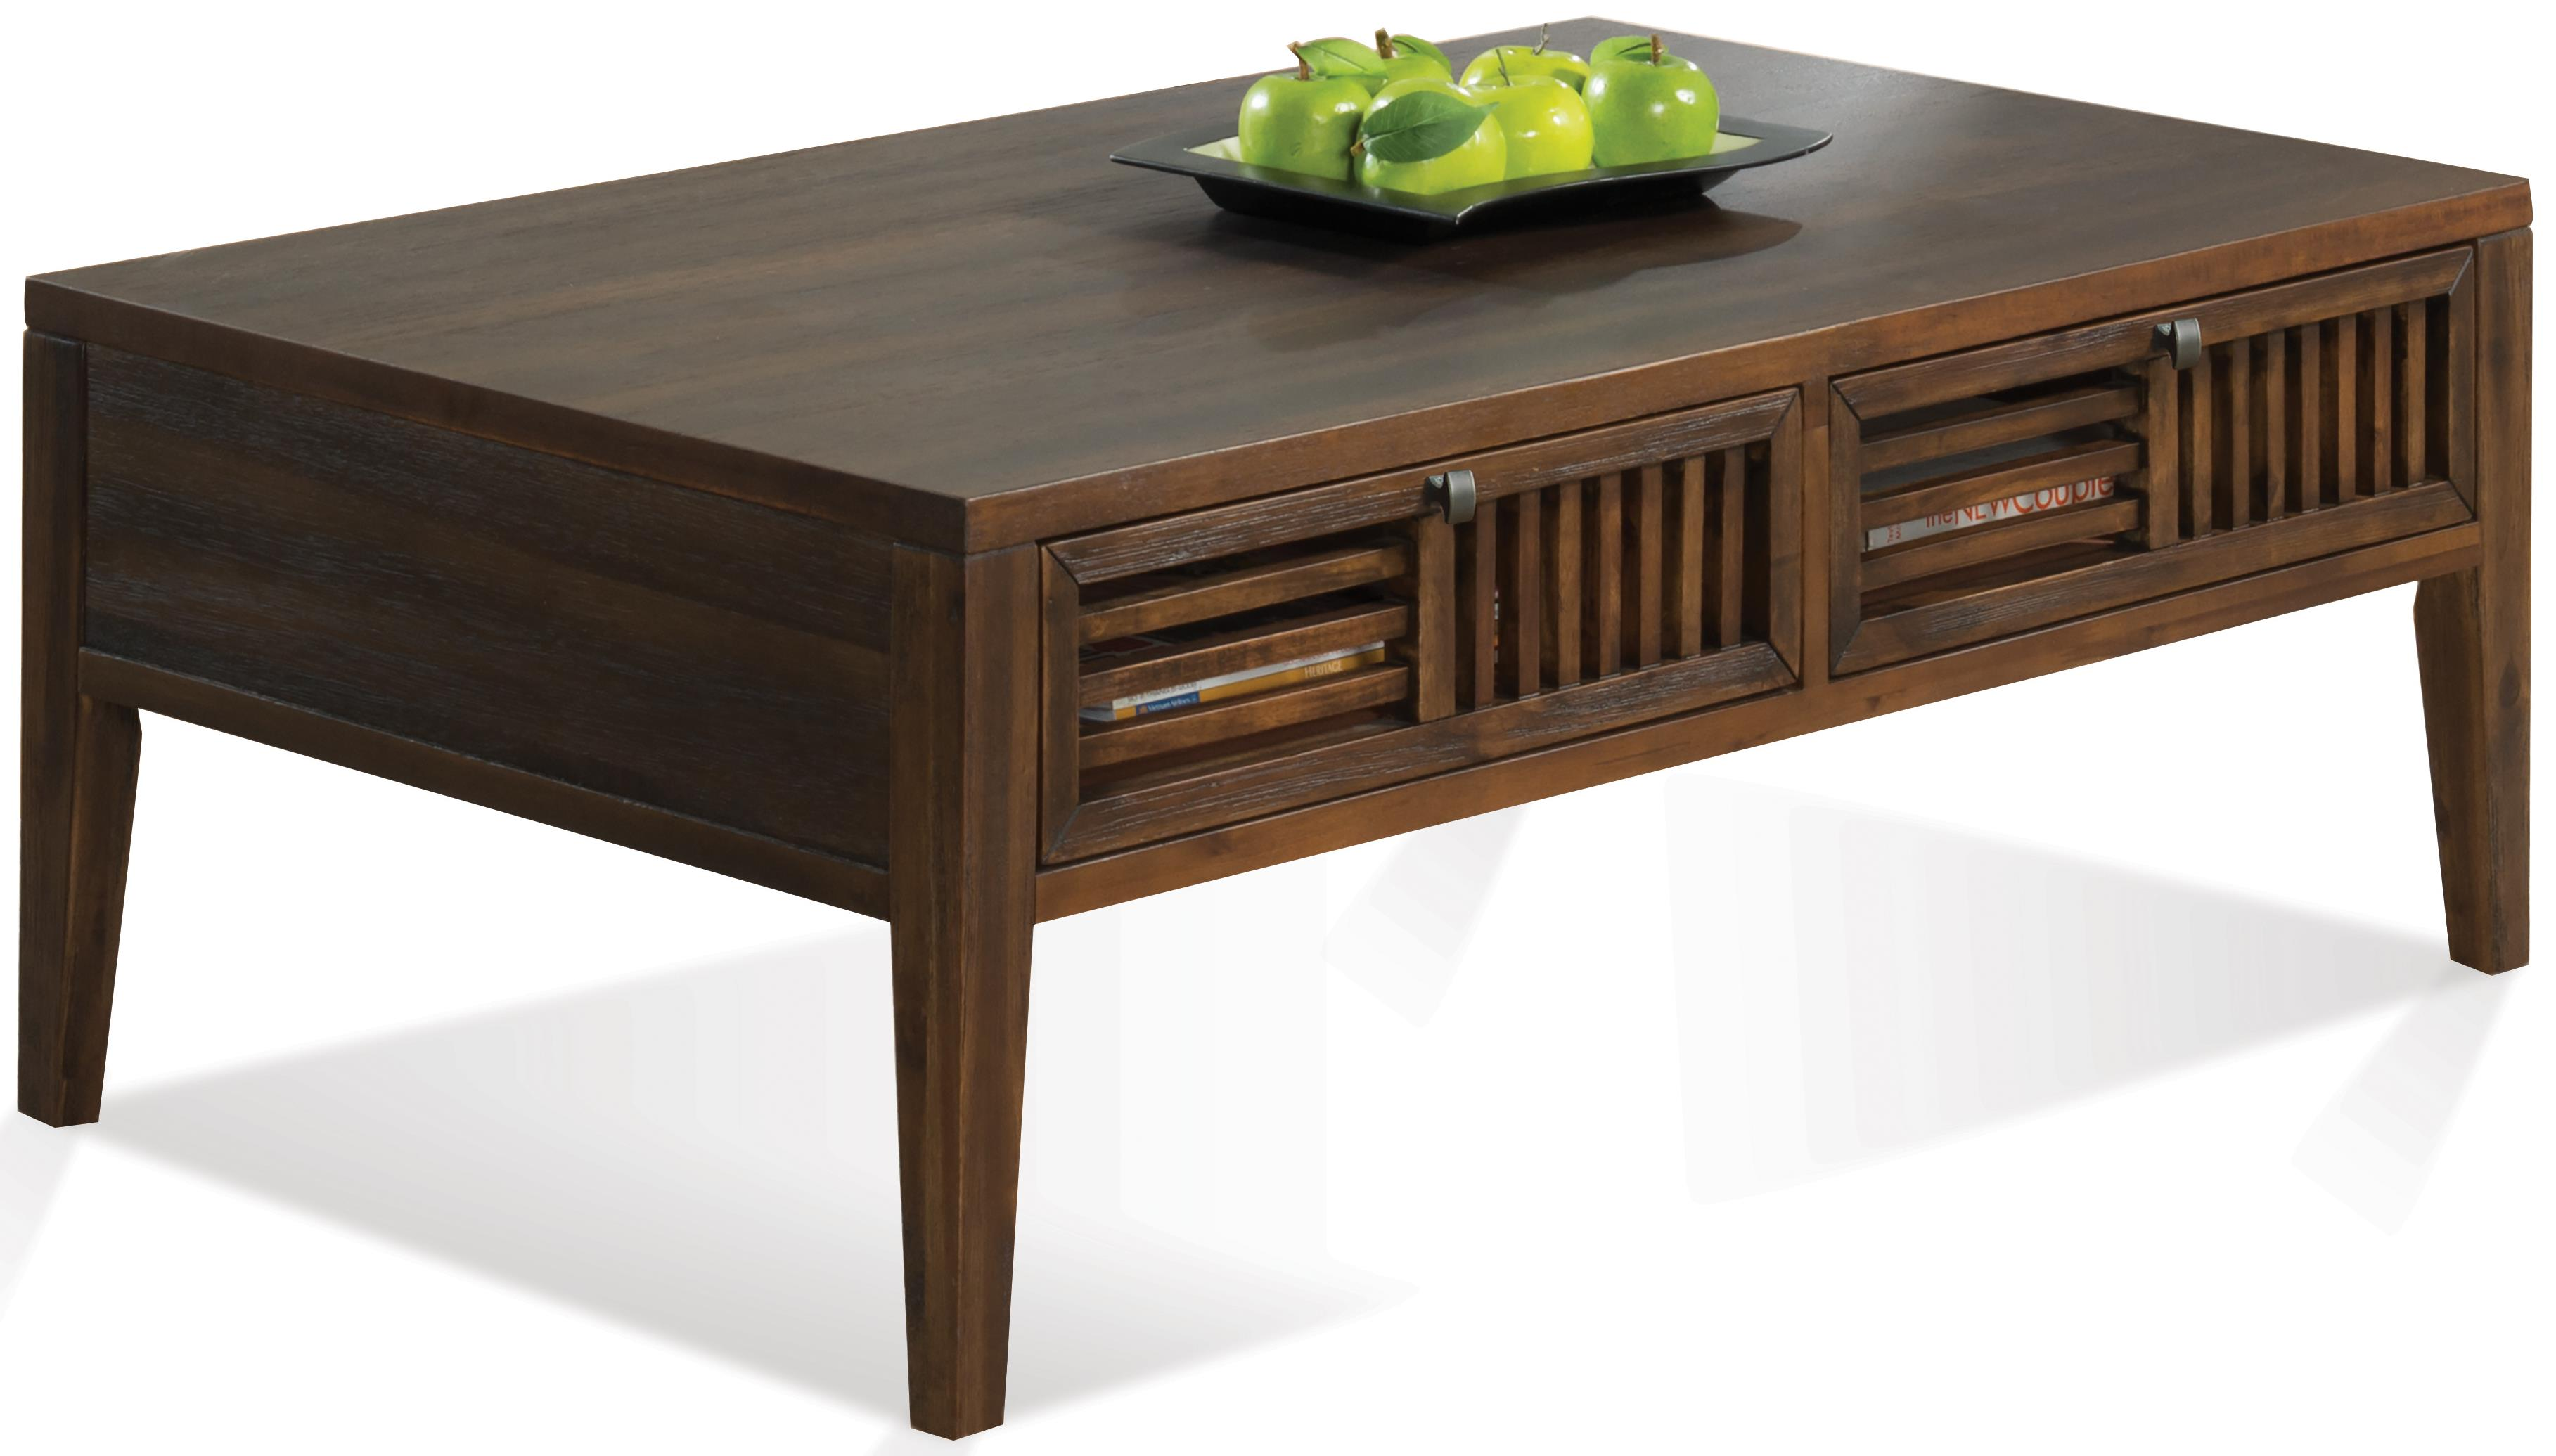 Riverside Furniture Modern Gatherings Open Slat Coffee Table - Item Number: 15303